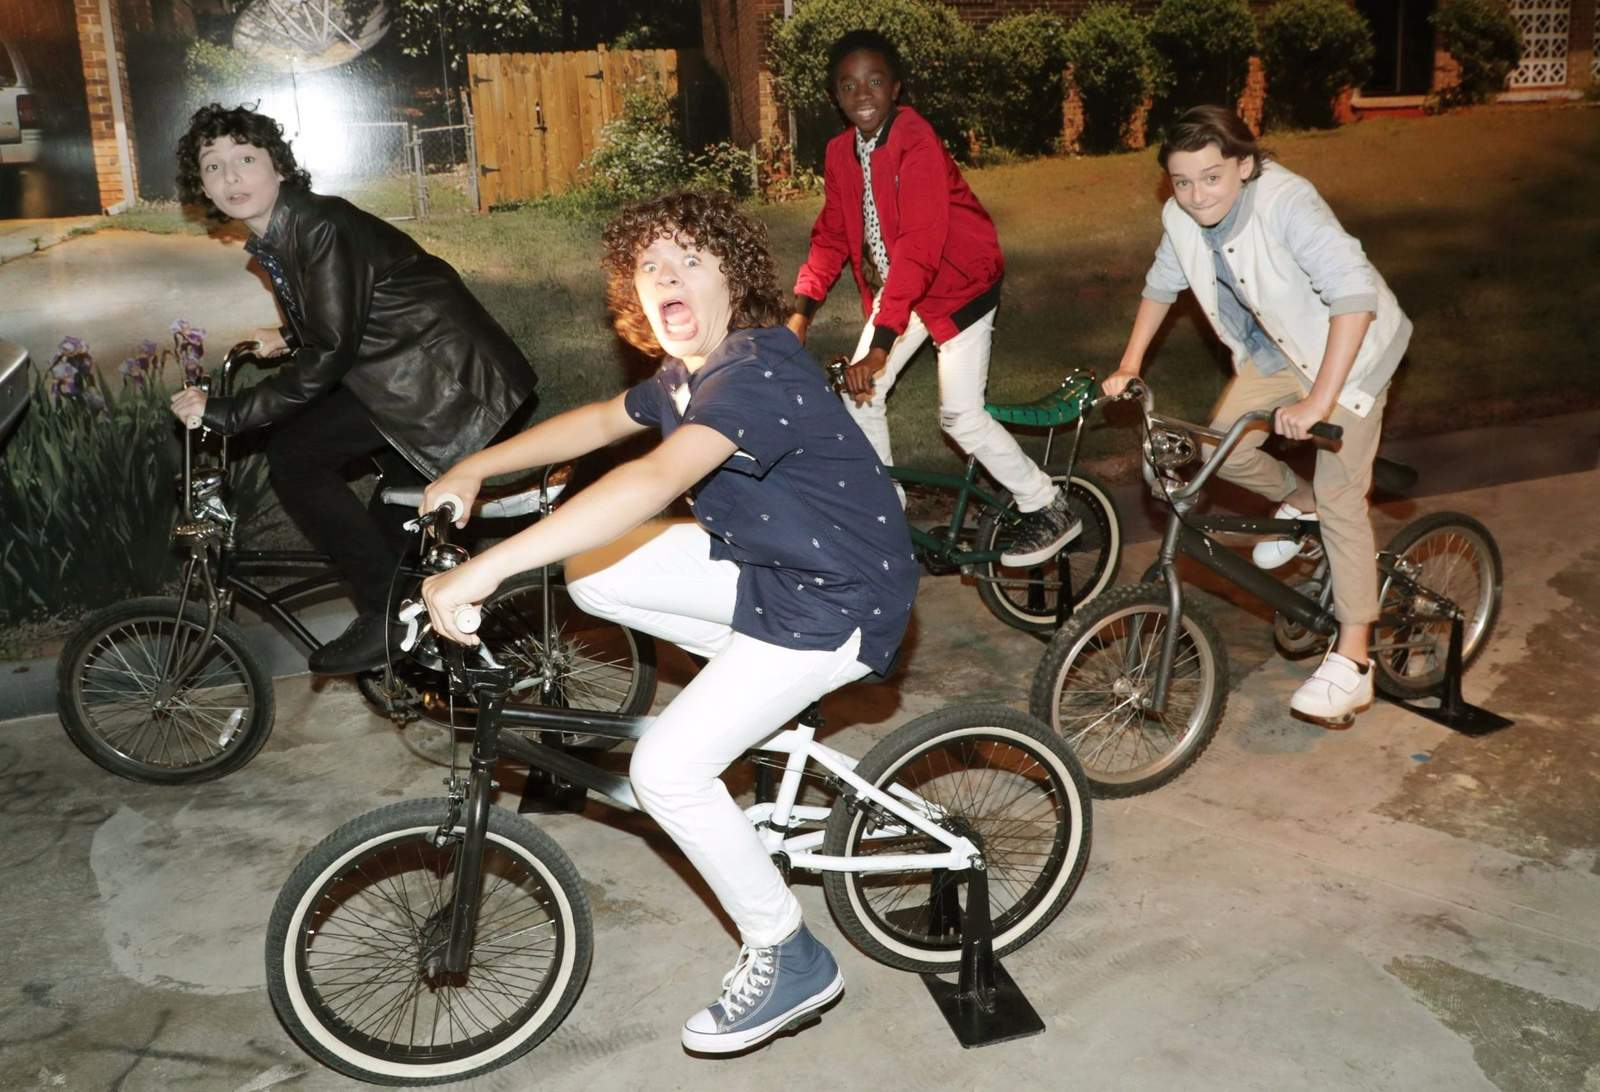 https://s3.amazonaws.com/uploads.bmxmuseum.com/user-images/152/stranger-things-netflix-fysee-cast-15d0bbd4864.jpg